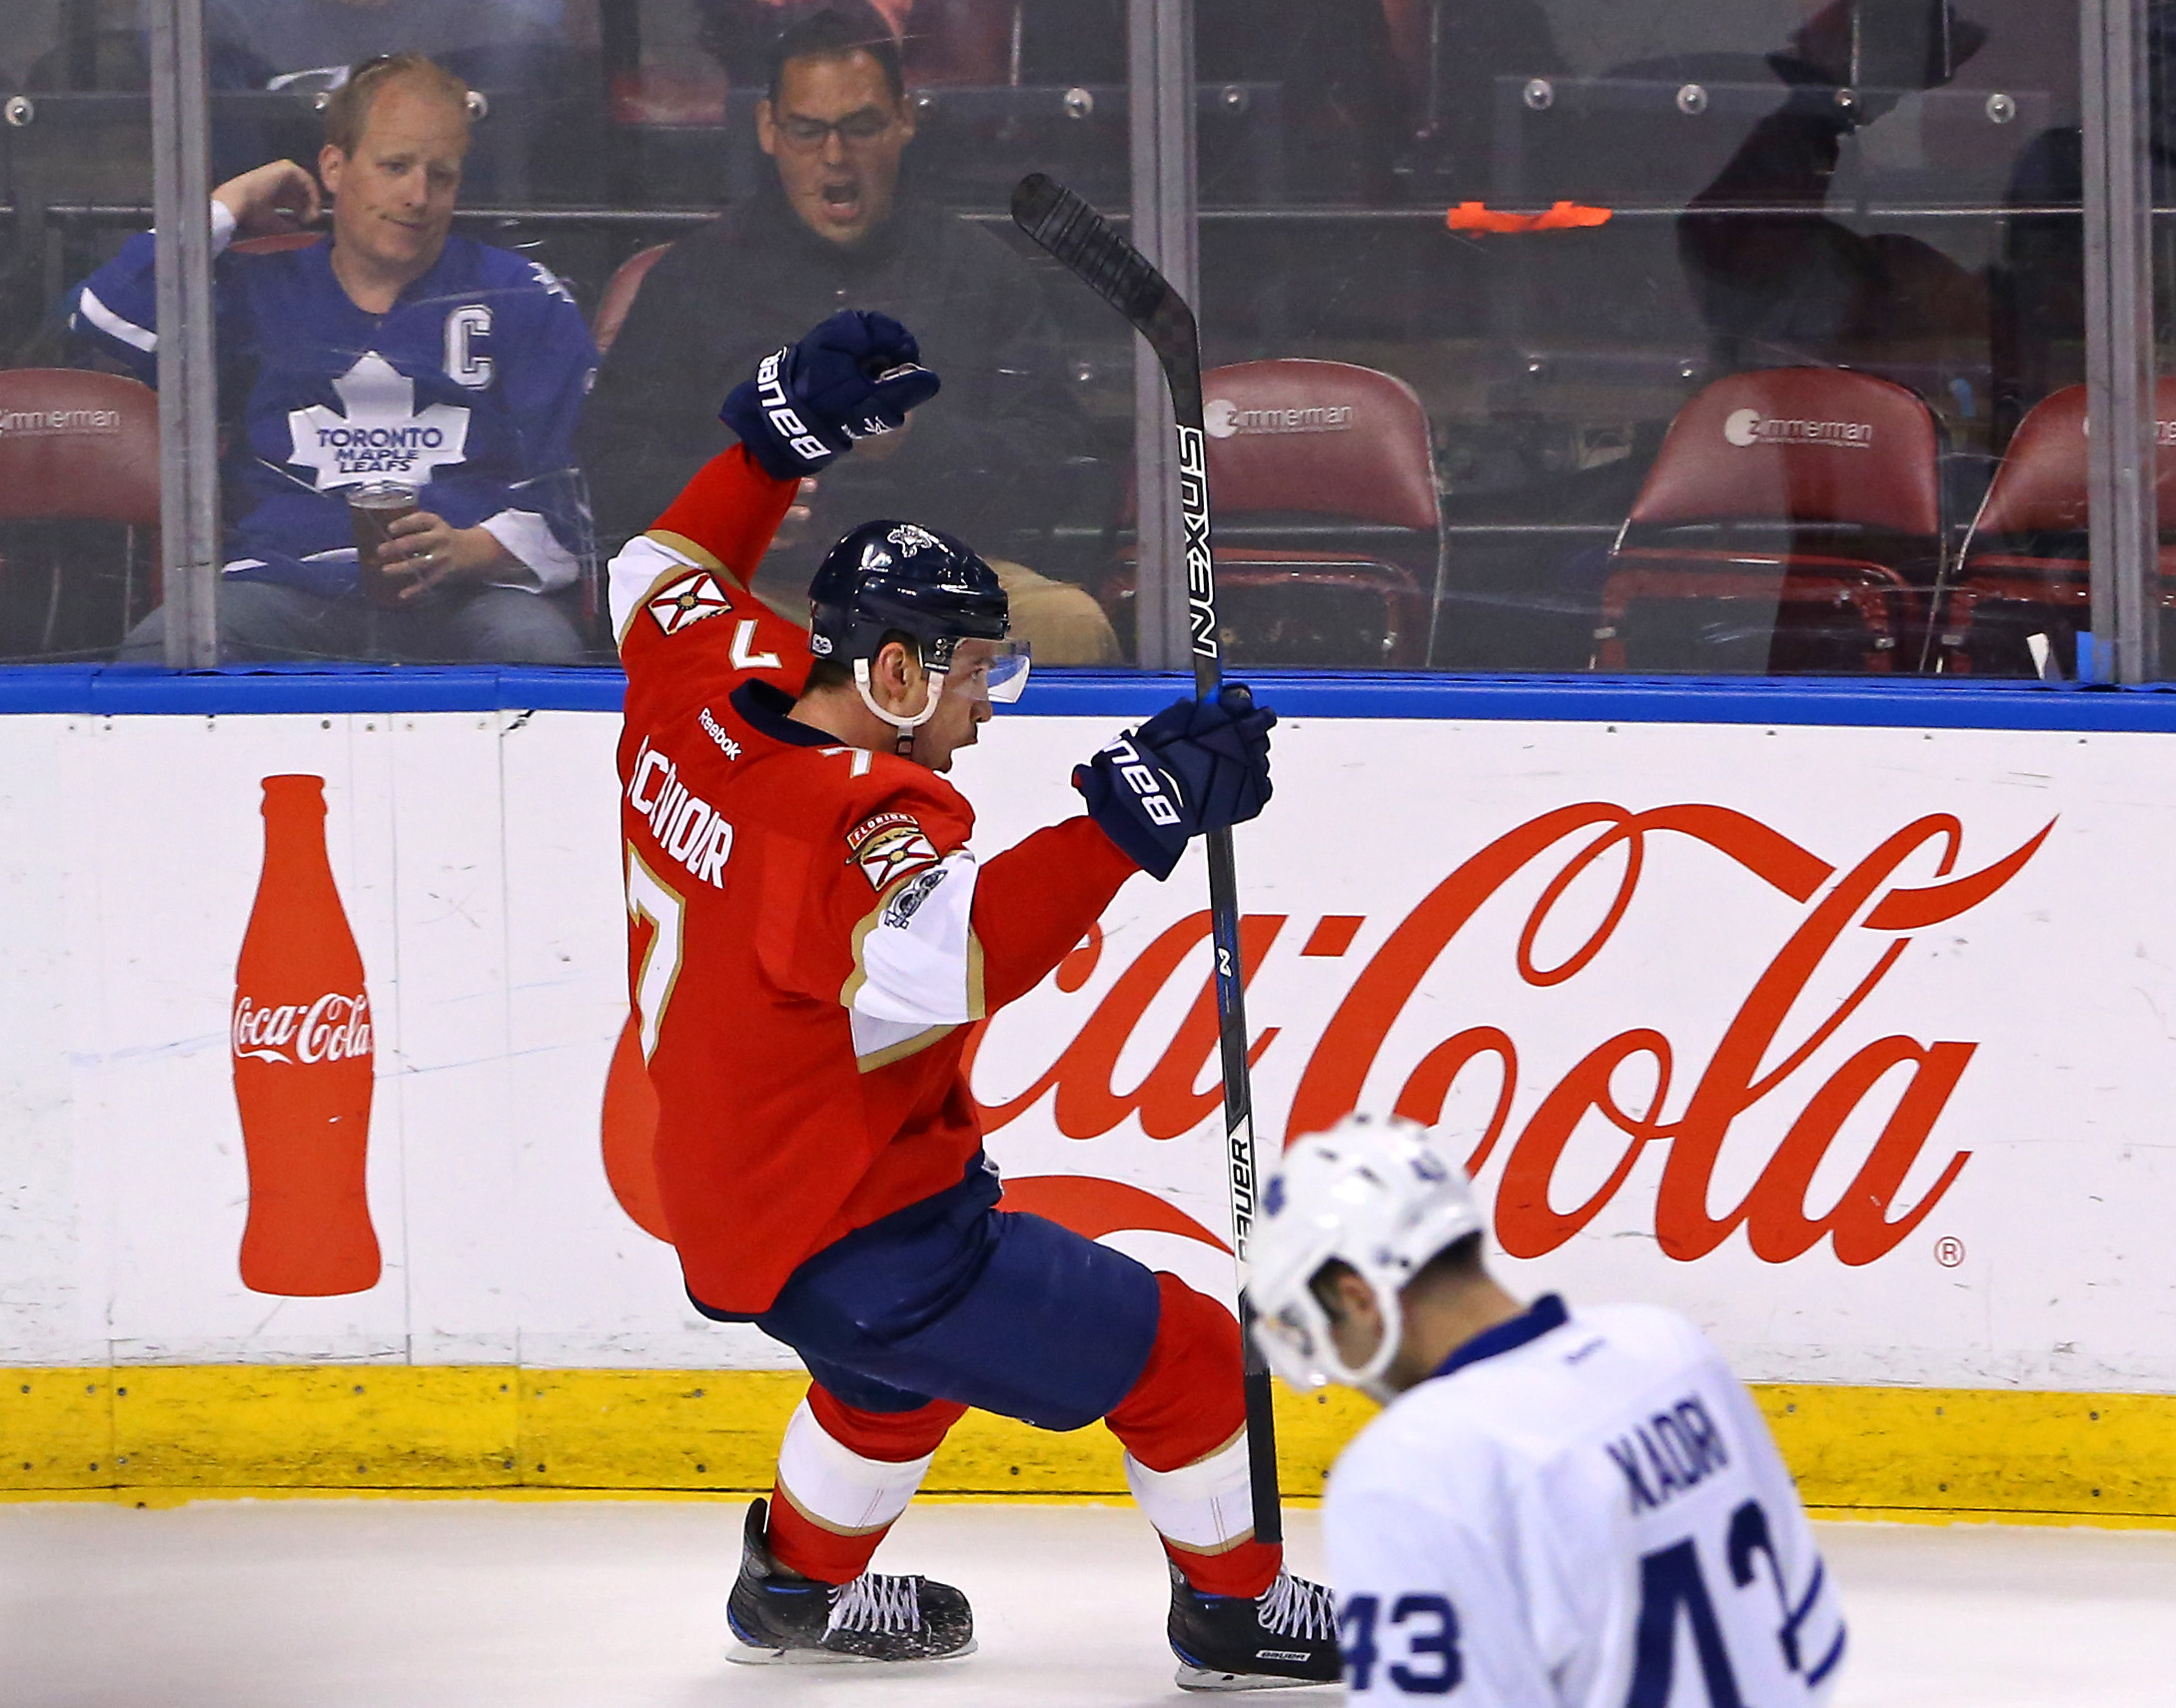 9942836-nhl-toronto-maple-leafs-at-florida-panthers